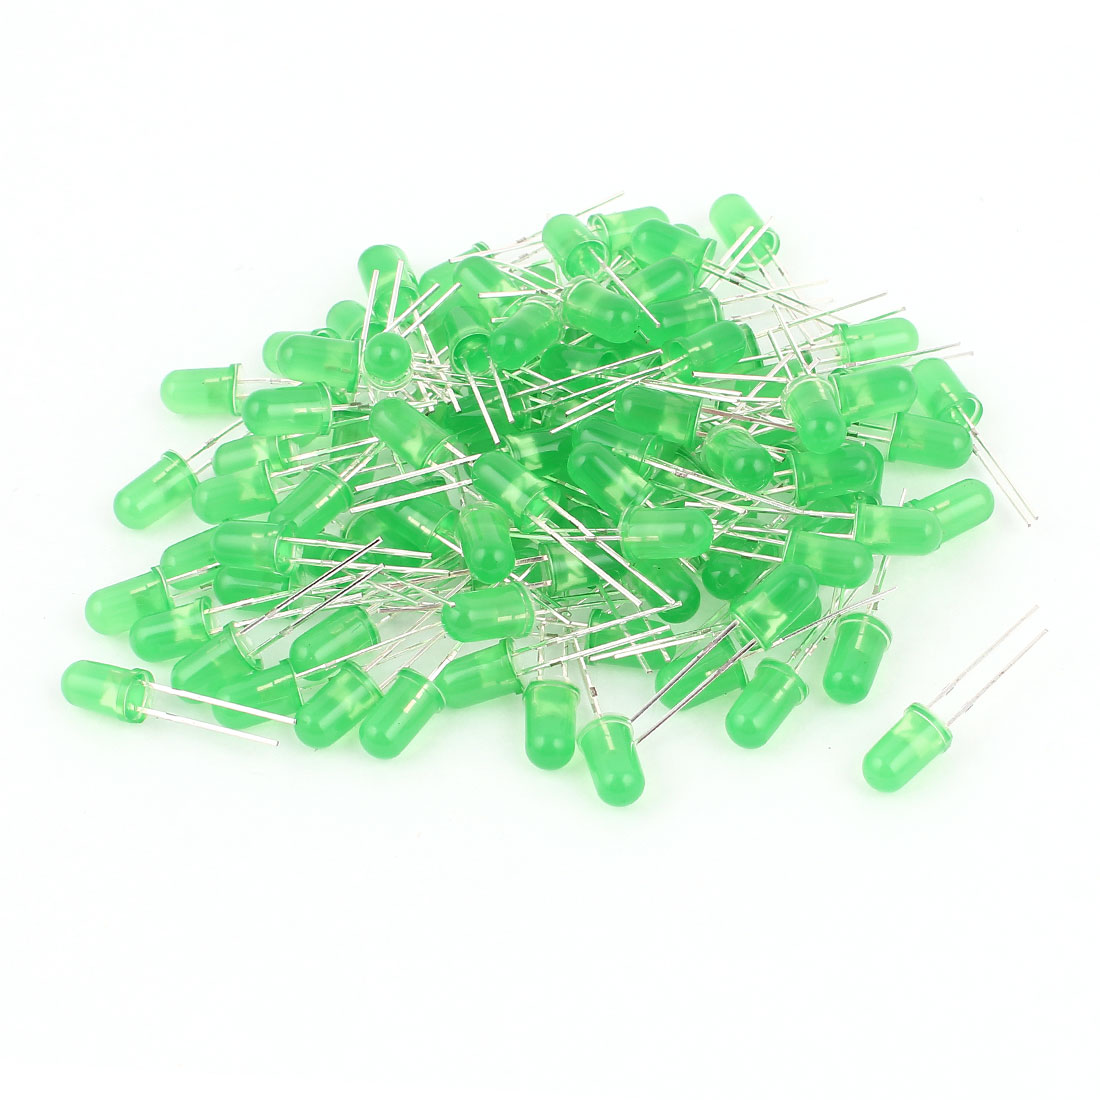 100 Pcs 5mm Round Head LED Green Light Emitting Diodes